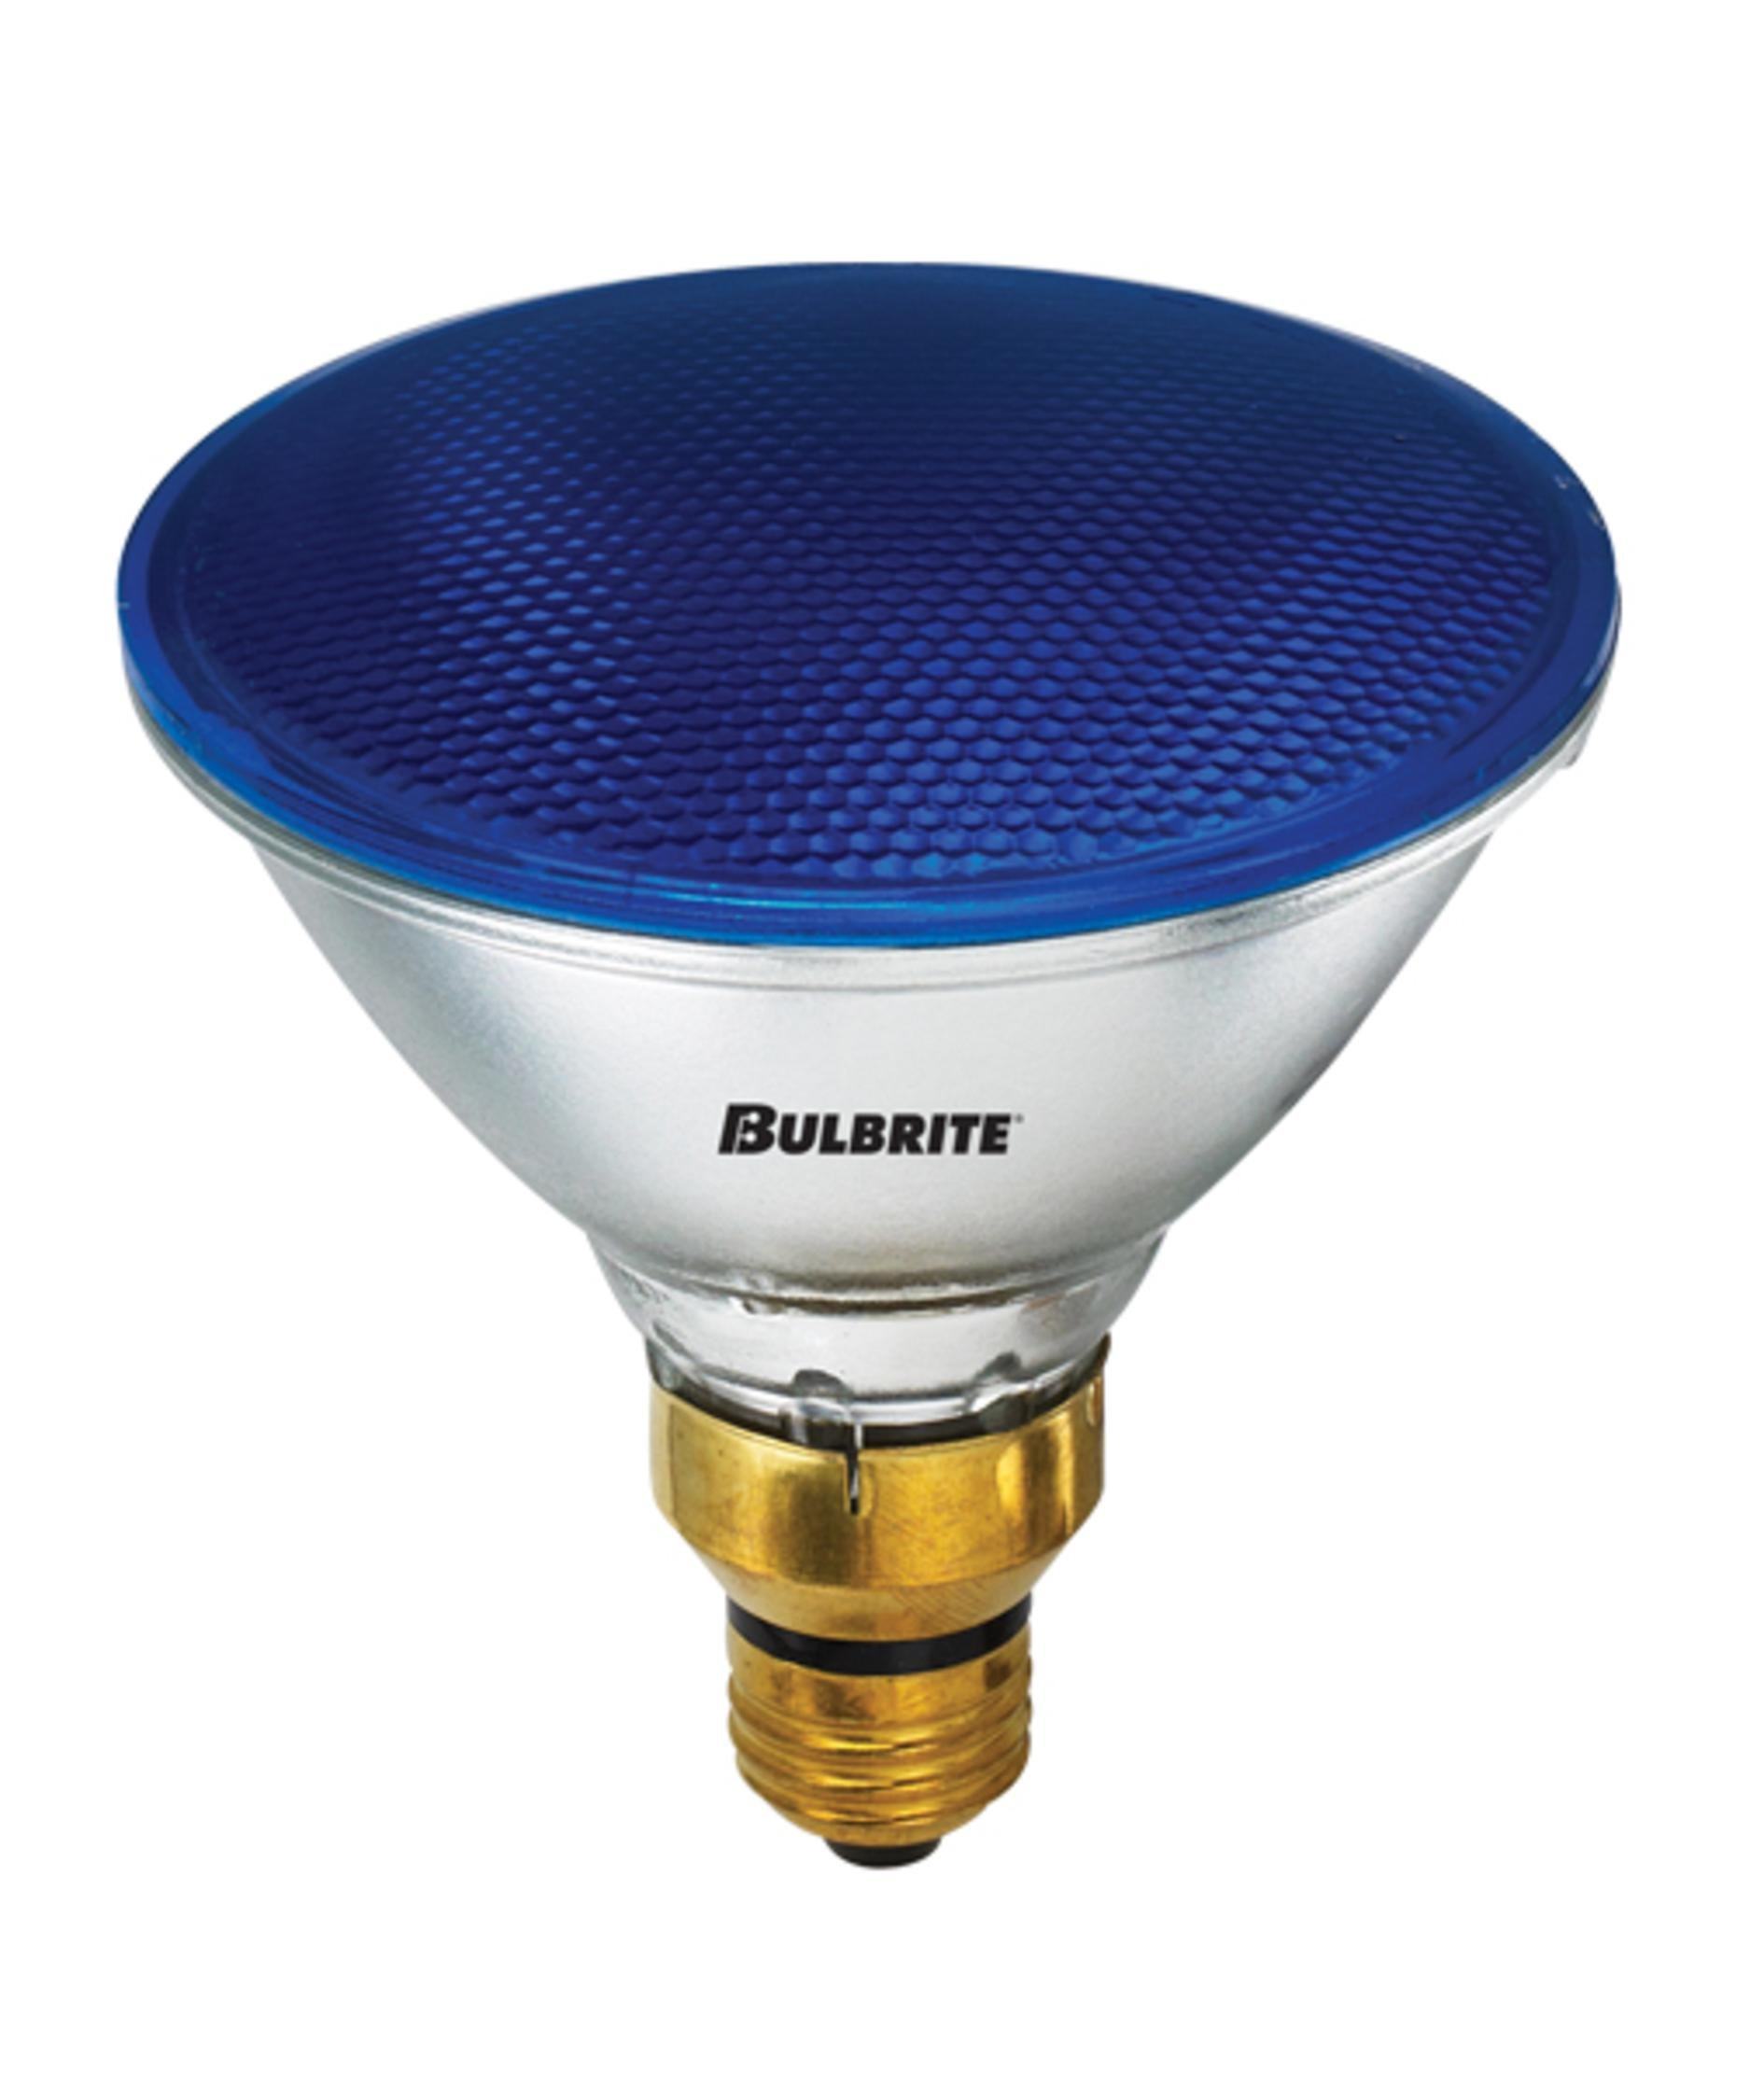 Bulbrite 683903 H90PAR38B 90 Watt PAR38 Halogen, Blue, Medium base, 120 volts (Pack of 8)